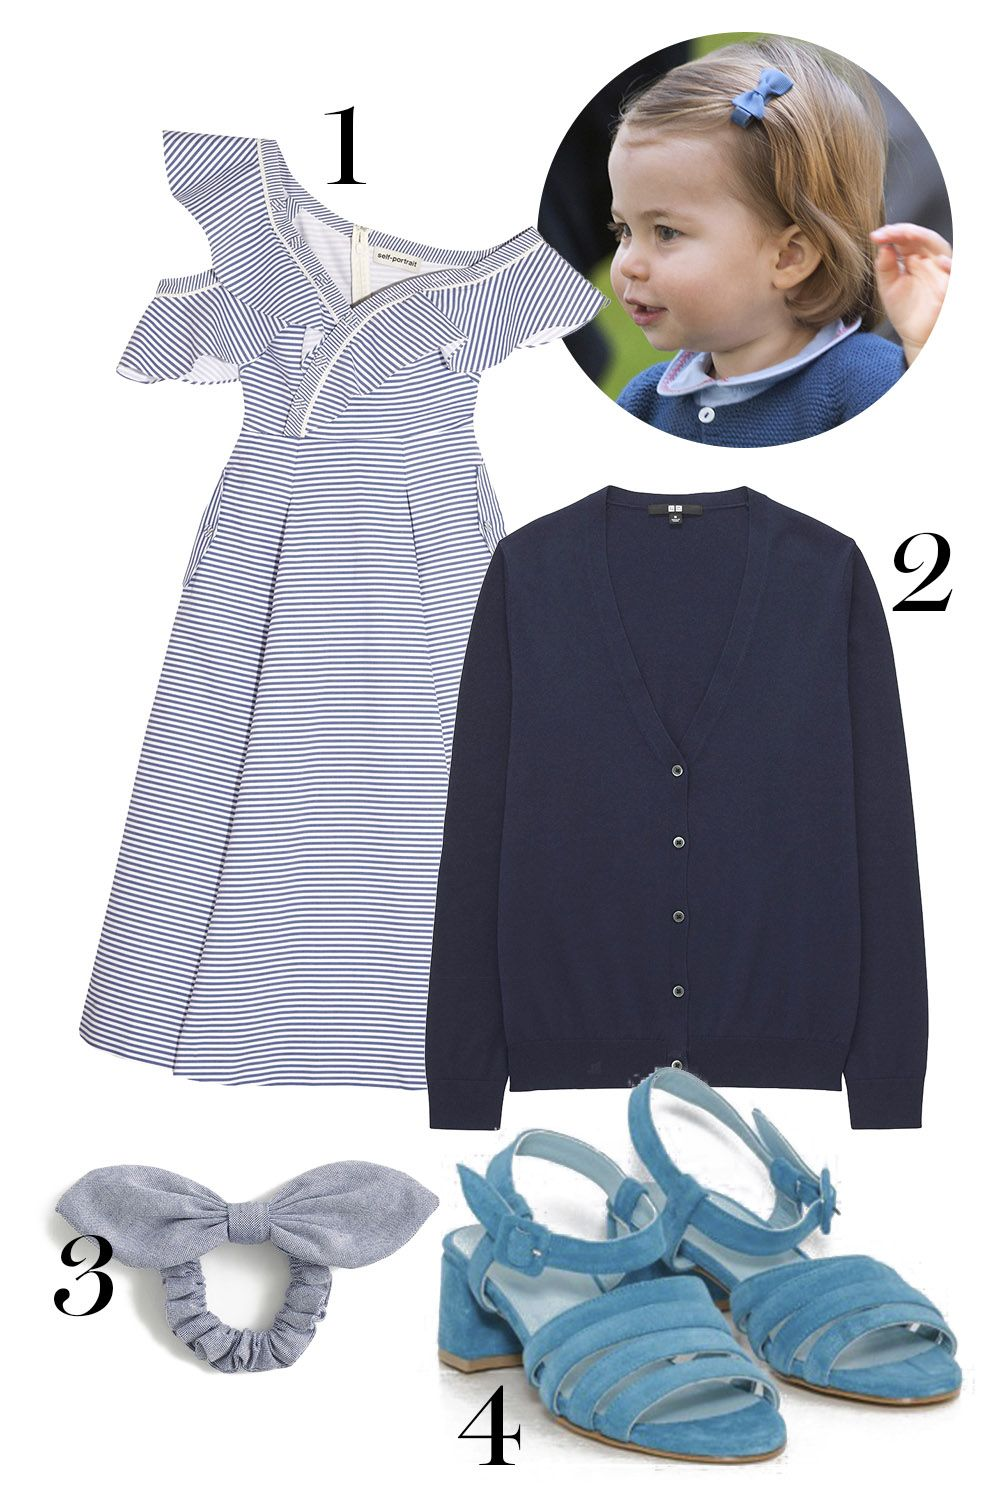 "<p>And when your parents literally rule (a corner of) the world, you can wear a chambray bow in your hair with a pretty sundress and *the* shoes all the non-royal princesses wear. (If you must, young lady, the cardi can go around your shoulders.) </p><p>1. Self-Portrait dress, $545, <a href=""https://www.net-a-porter.com/us/en/product/847847/self_portrait/off-the-shoulder-striped-cotton-poplin-midi-dress"" target=""_blank"" data-tracking-id=""recirc-text-link"">net-a-porter.com</a>.</p><p>2. Uniqlo cardigan, $20, <a href=""https://www.uniqlo.com/us/en/women-supima-cotton-v-neck-cardigan-181865.html?dwvar_181865_color=COL09&cgid=women-sweaters-cardigans#start=6&cgid=women-sweaters-cardigans"" target=""_blank"" data-tracking-id=""recirc-text-link"">uniqlo.com</a>.</p><p>3. J.Crew hair tie, $12.50, <a href=""https://www.jcrew.com/p/womens_category/accessories/hairaccessories/chambray-bow-hair-tie/G2873"" target=""_blank"" data-tracking-id=""recirc-text-link"">jcrew.com</a>.</p><p>4. Maryam Nassir Zadeh sandals, $420, <a href=""https://www.thedreslyn.com/palma-low-sandal-2.html"" target=""_blank"" data-tracking-id=""recirc-text-link"">thedreslyn.com</a>.</p>"